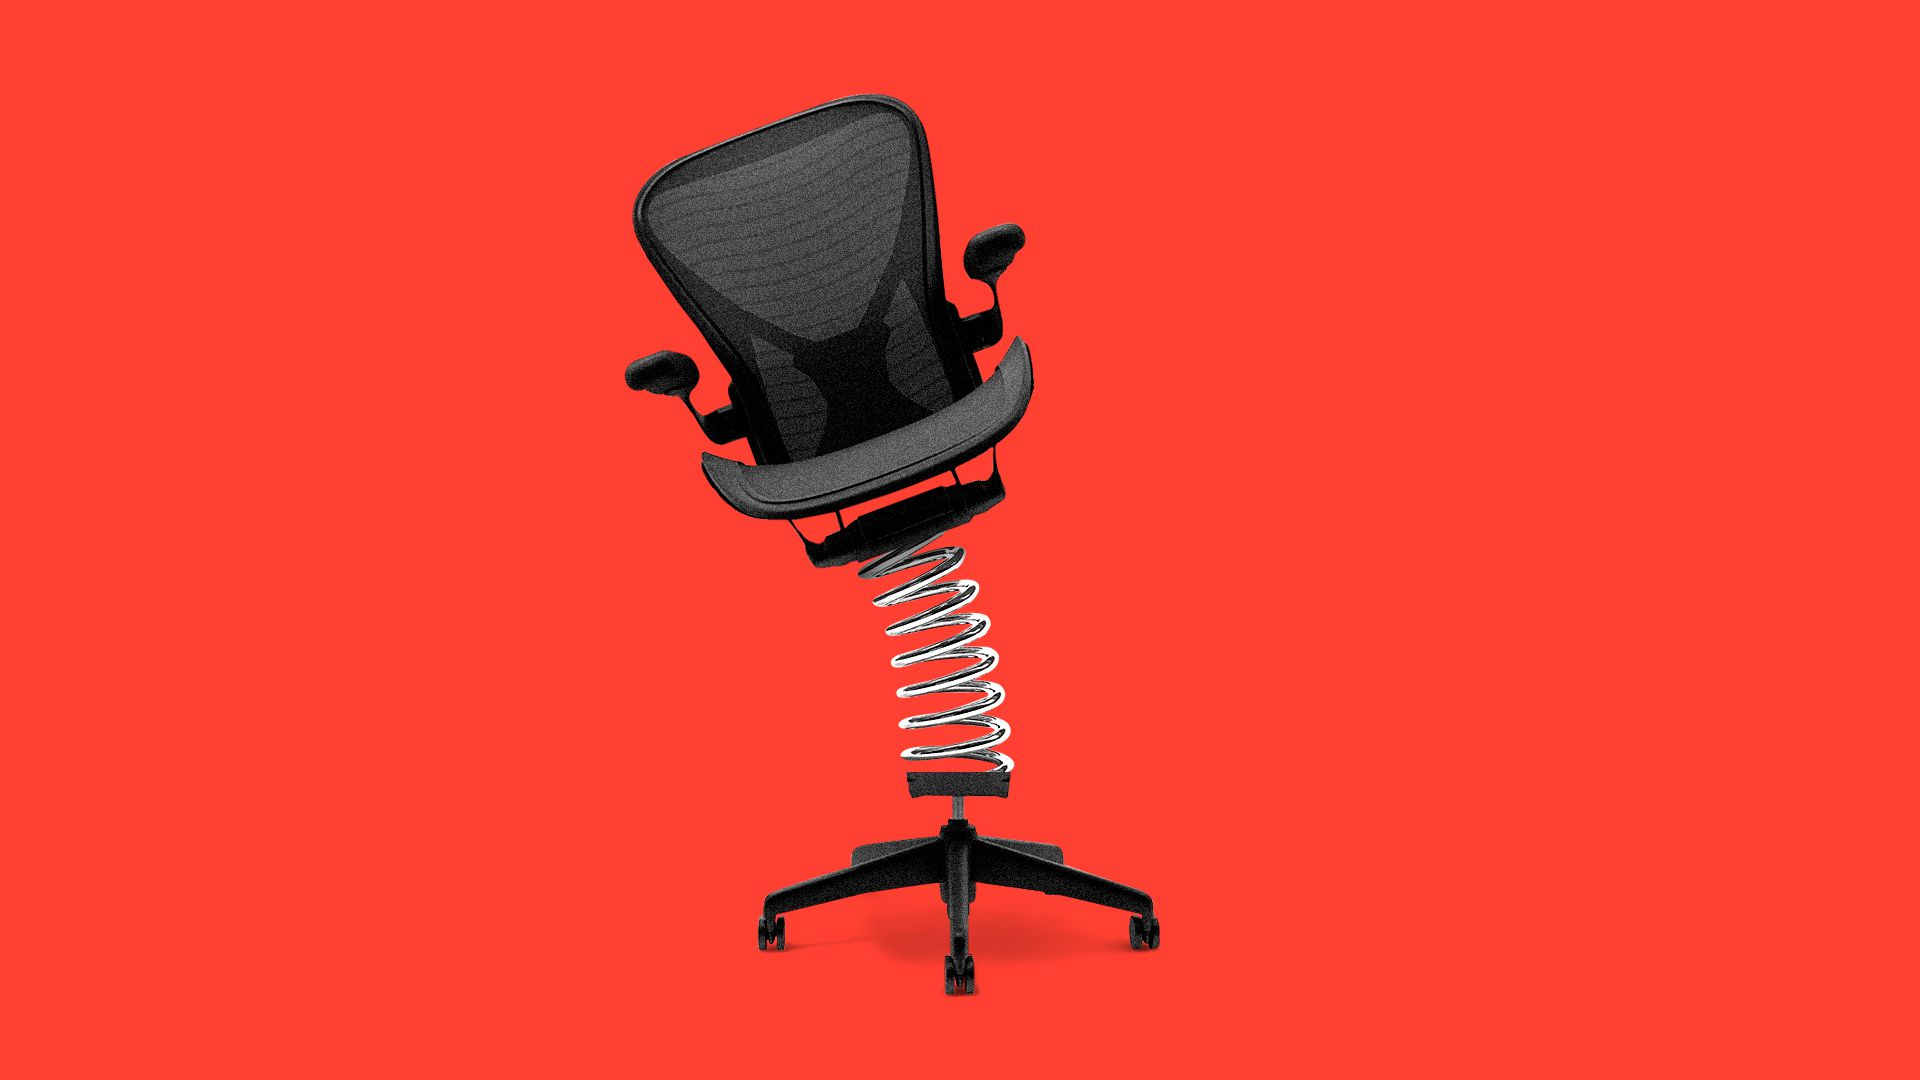 Illustration of an office chair split in half horizontally, with the seat half being ejected from the bottom half by a spring.